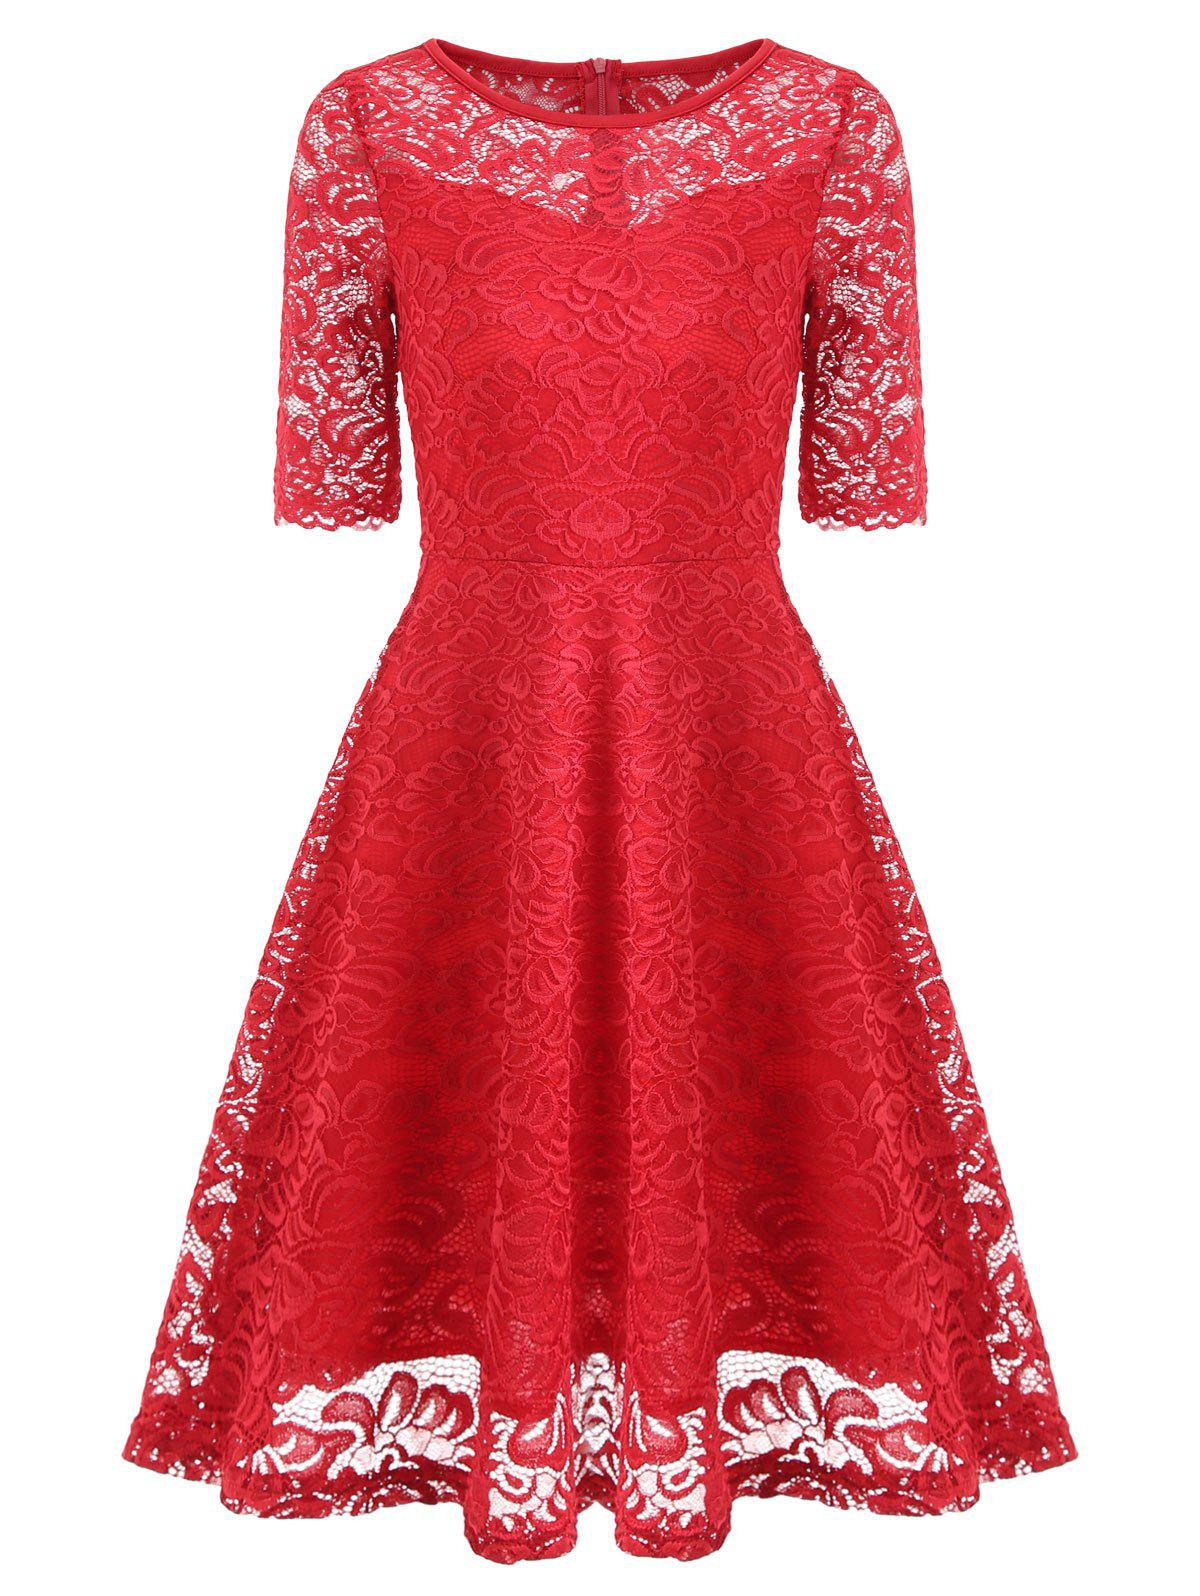 Fit and Flare Lace Vintage Dress - RED L